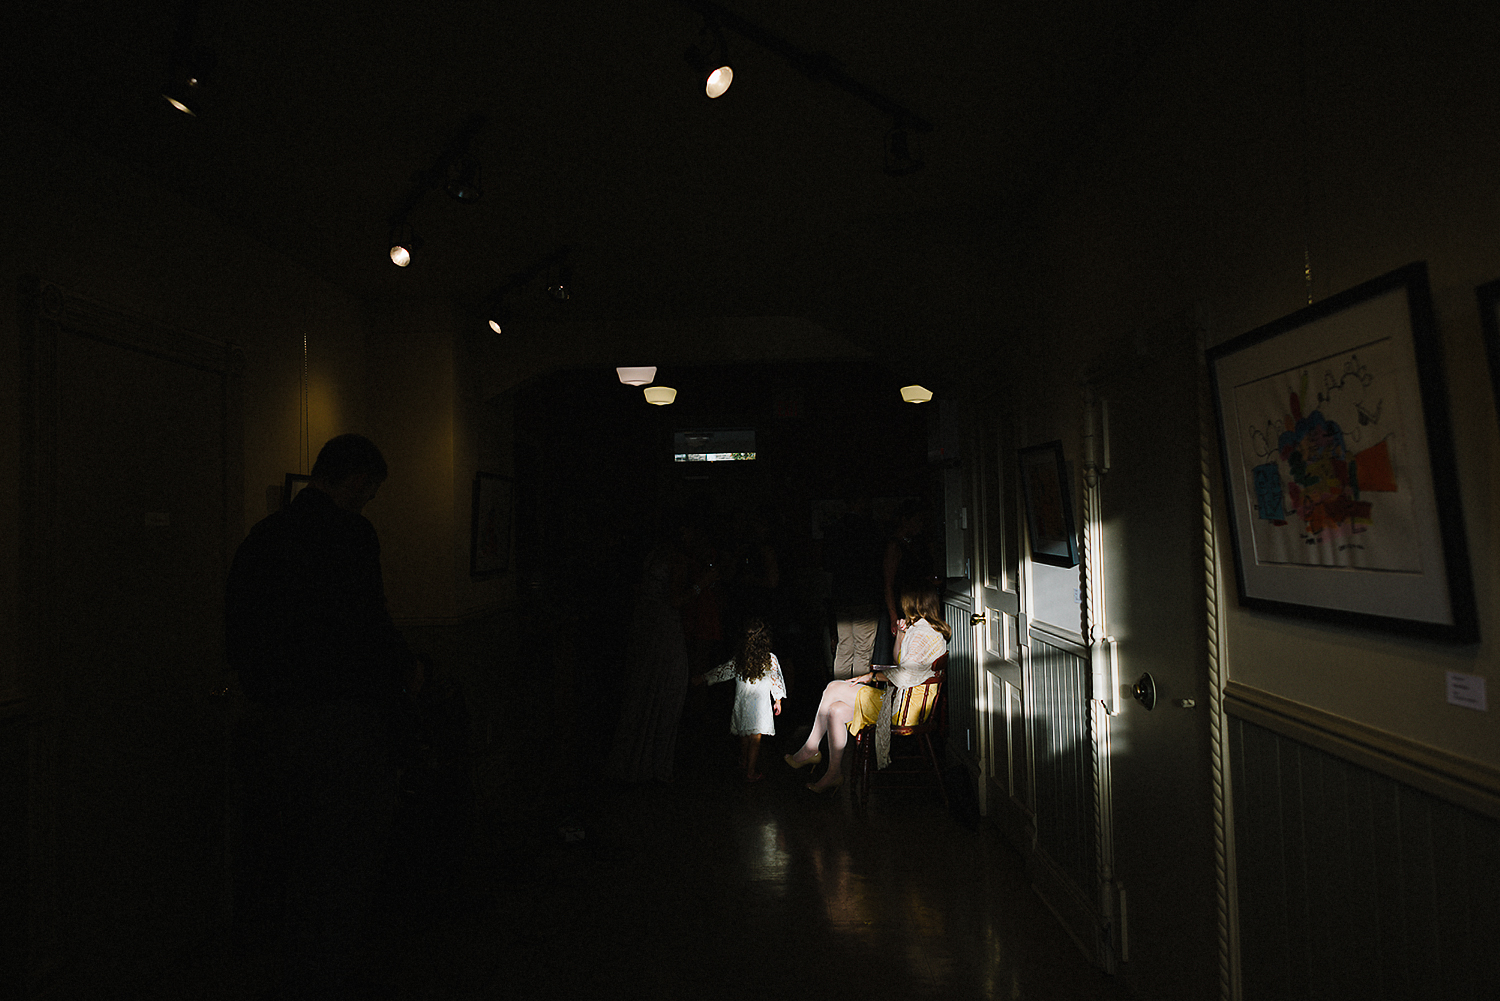 Best-Moody-Documentary-Wedding-Photography-Photojournalism-Vintage-Small-Town-Chapel-Wedding-Toronto-Ontario_Reception-Venue-Old-Town-Hall-Sunlight.jpg